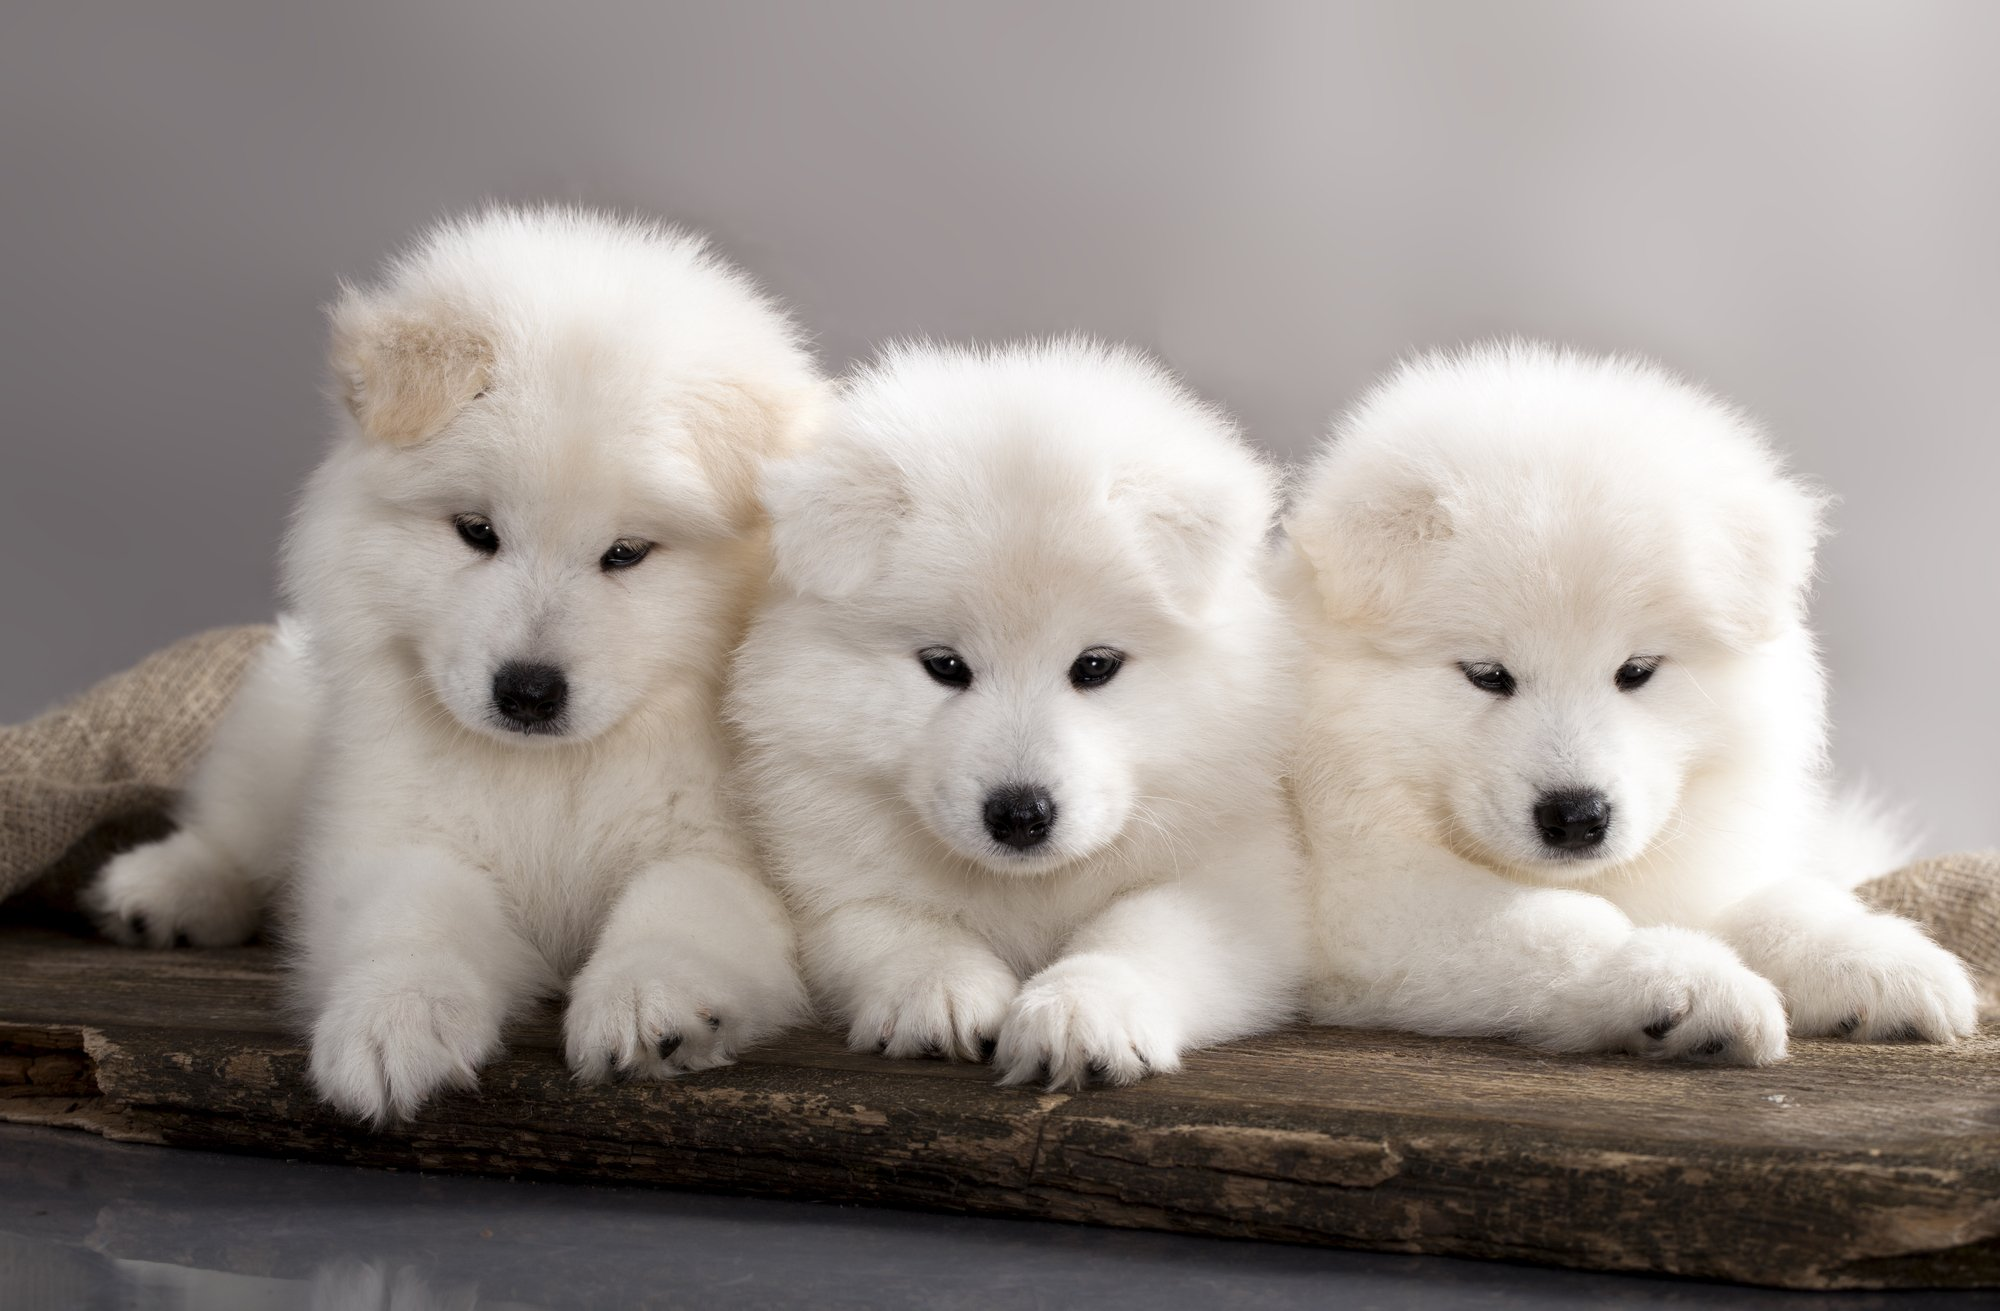 Find cute fluffy dog breeds here.